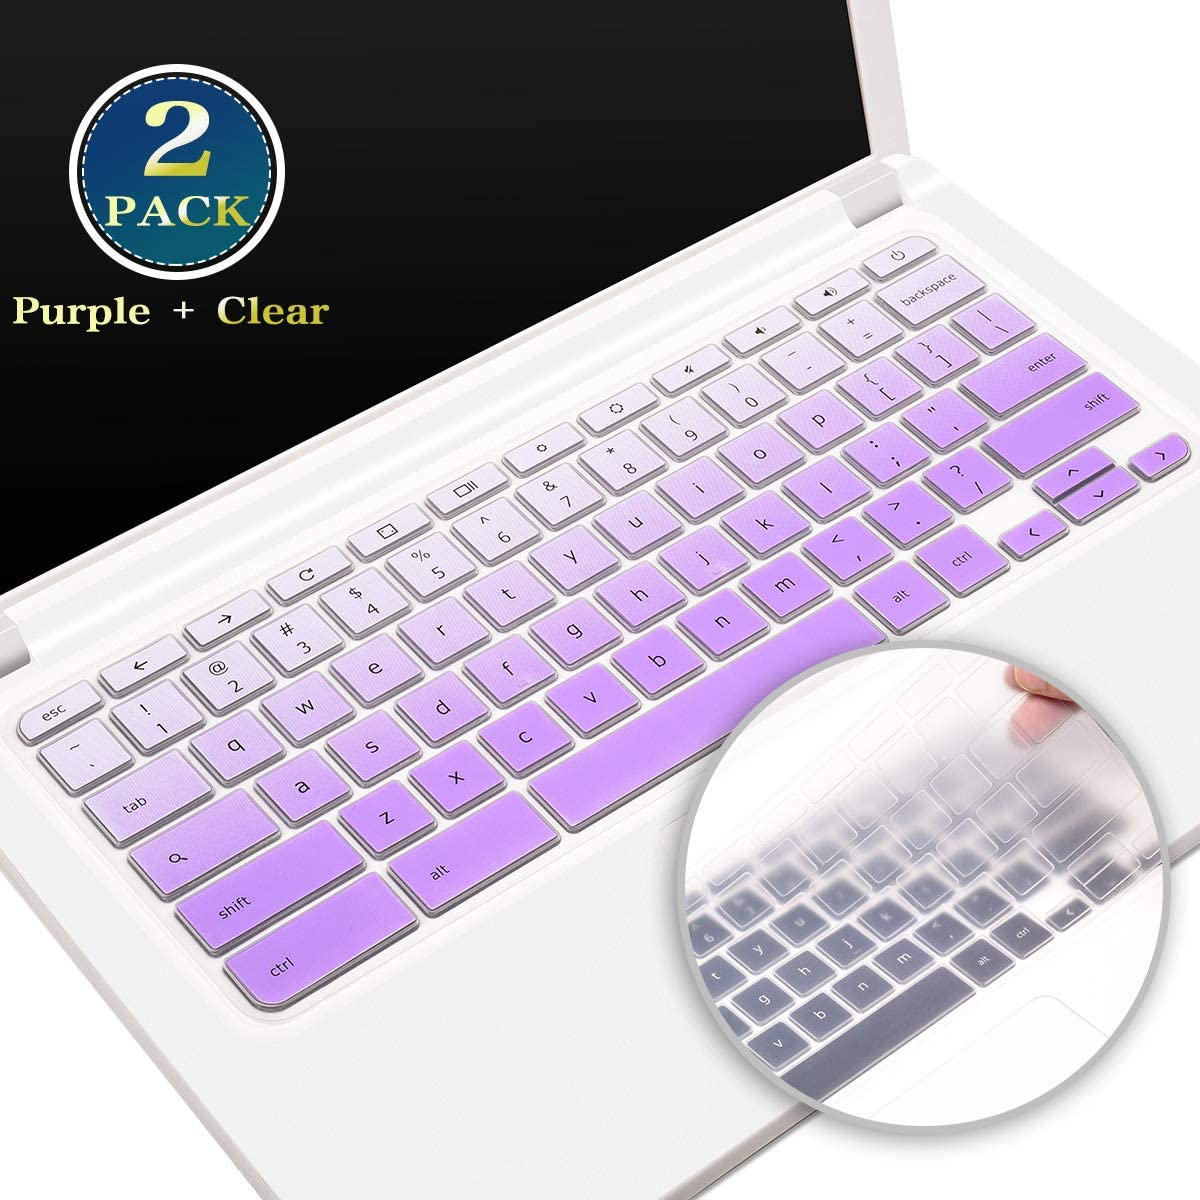 "for Lenovo Chromebook 11.6 Inch Keyboard Cover C330, Silicone Keyboard Skin for Lenovo Flex 11 Chromebook/Chromebook N20 N21 N22 N23 100e 300e 500e 11.6"", 14"" Chromebook N42 N42-20(Purple+Clear)"